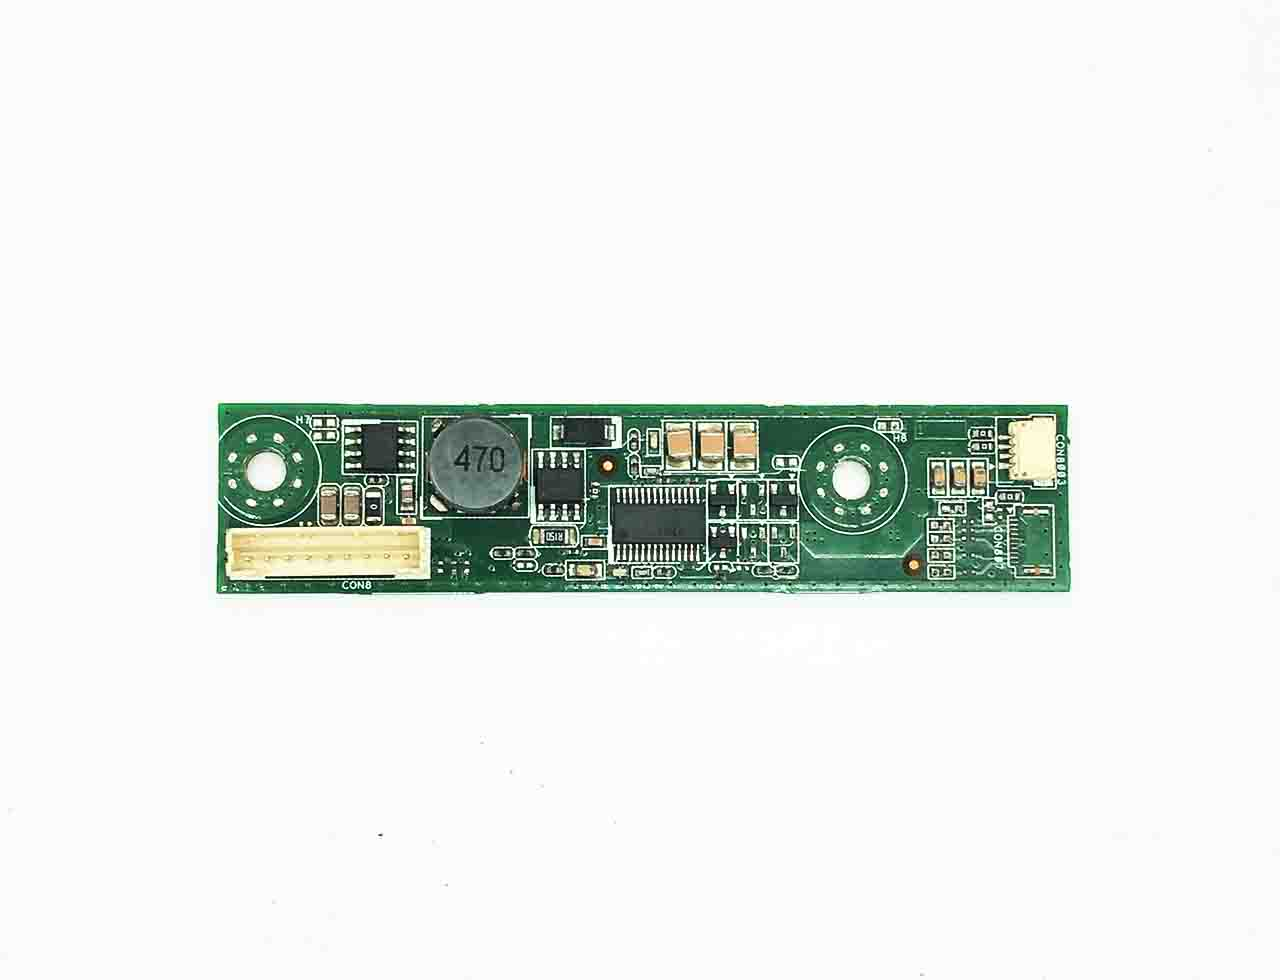 戴尔Dell Inspiron One 23 (2320) / Vostro 360 9010一体机高压板 All-In-One Converter Board 0DKTMN 0627CV 0cnmpf